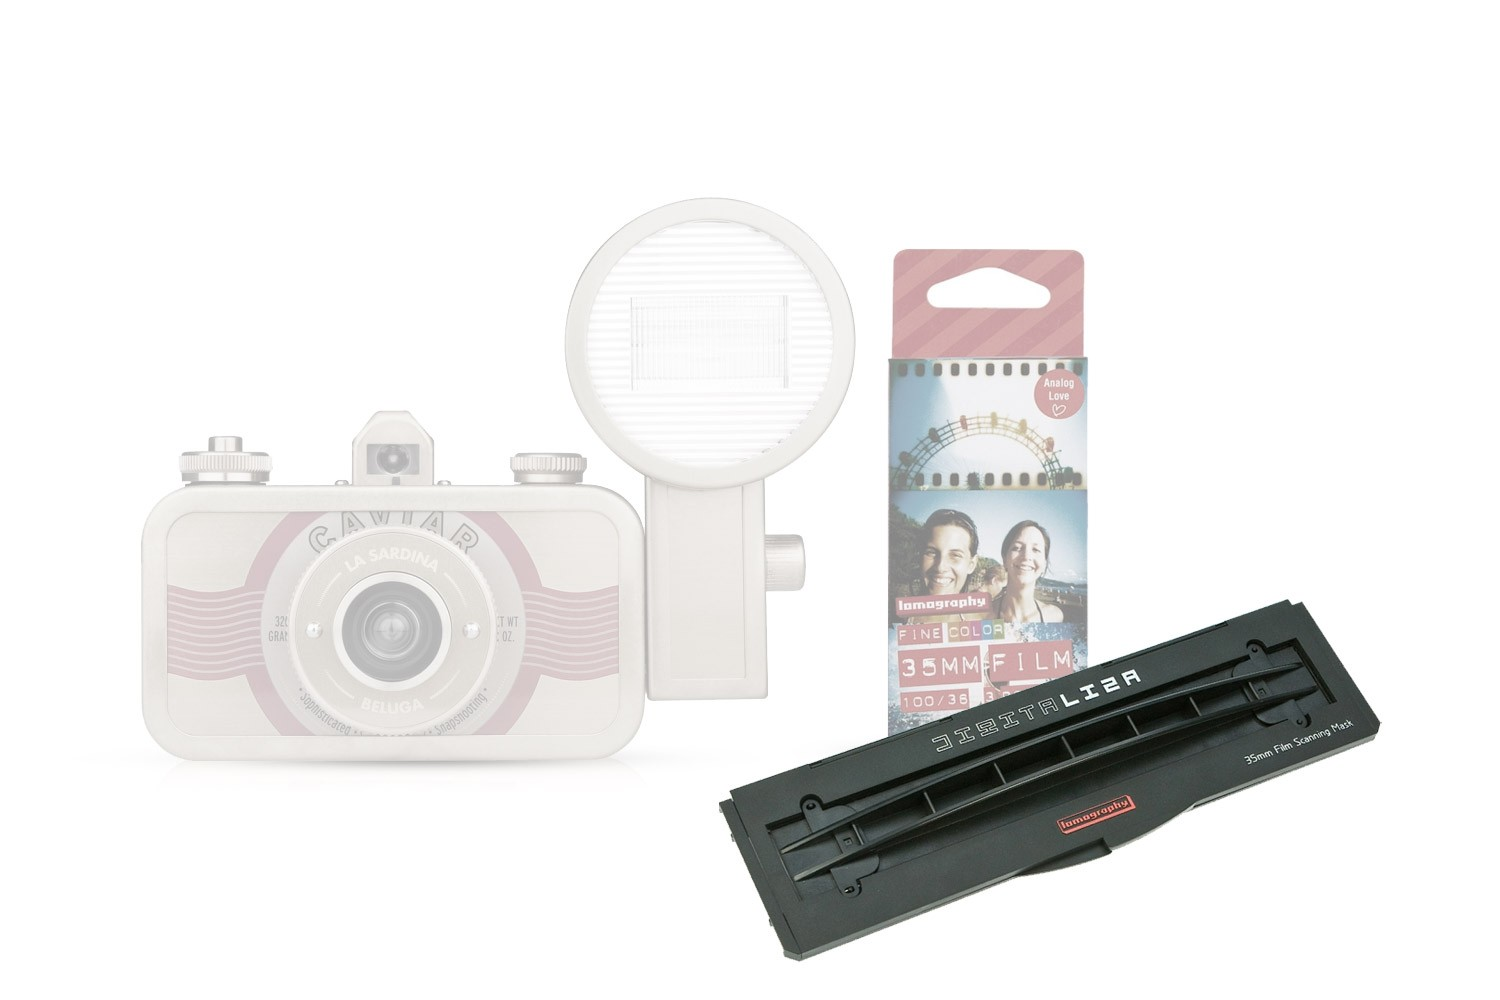 La Sardina Metal Edition and DigitaLIZA Bundle